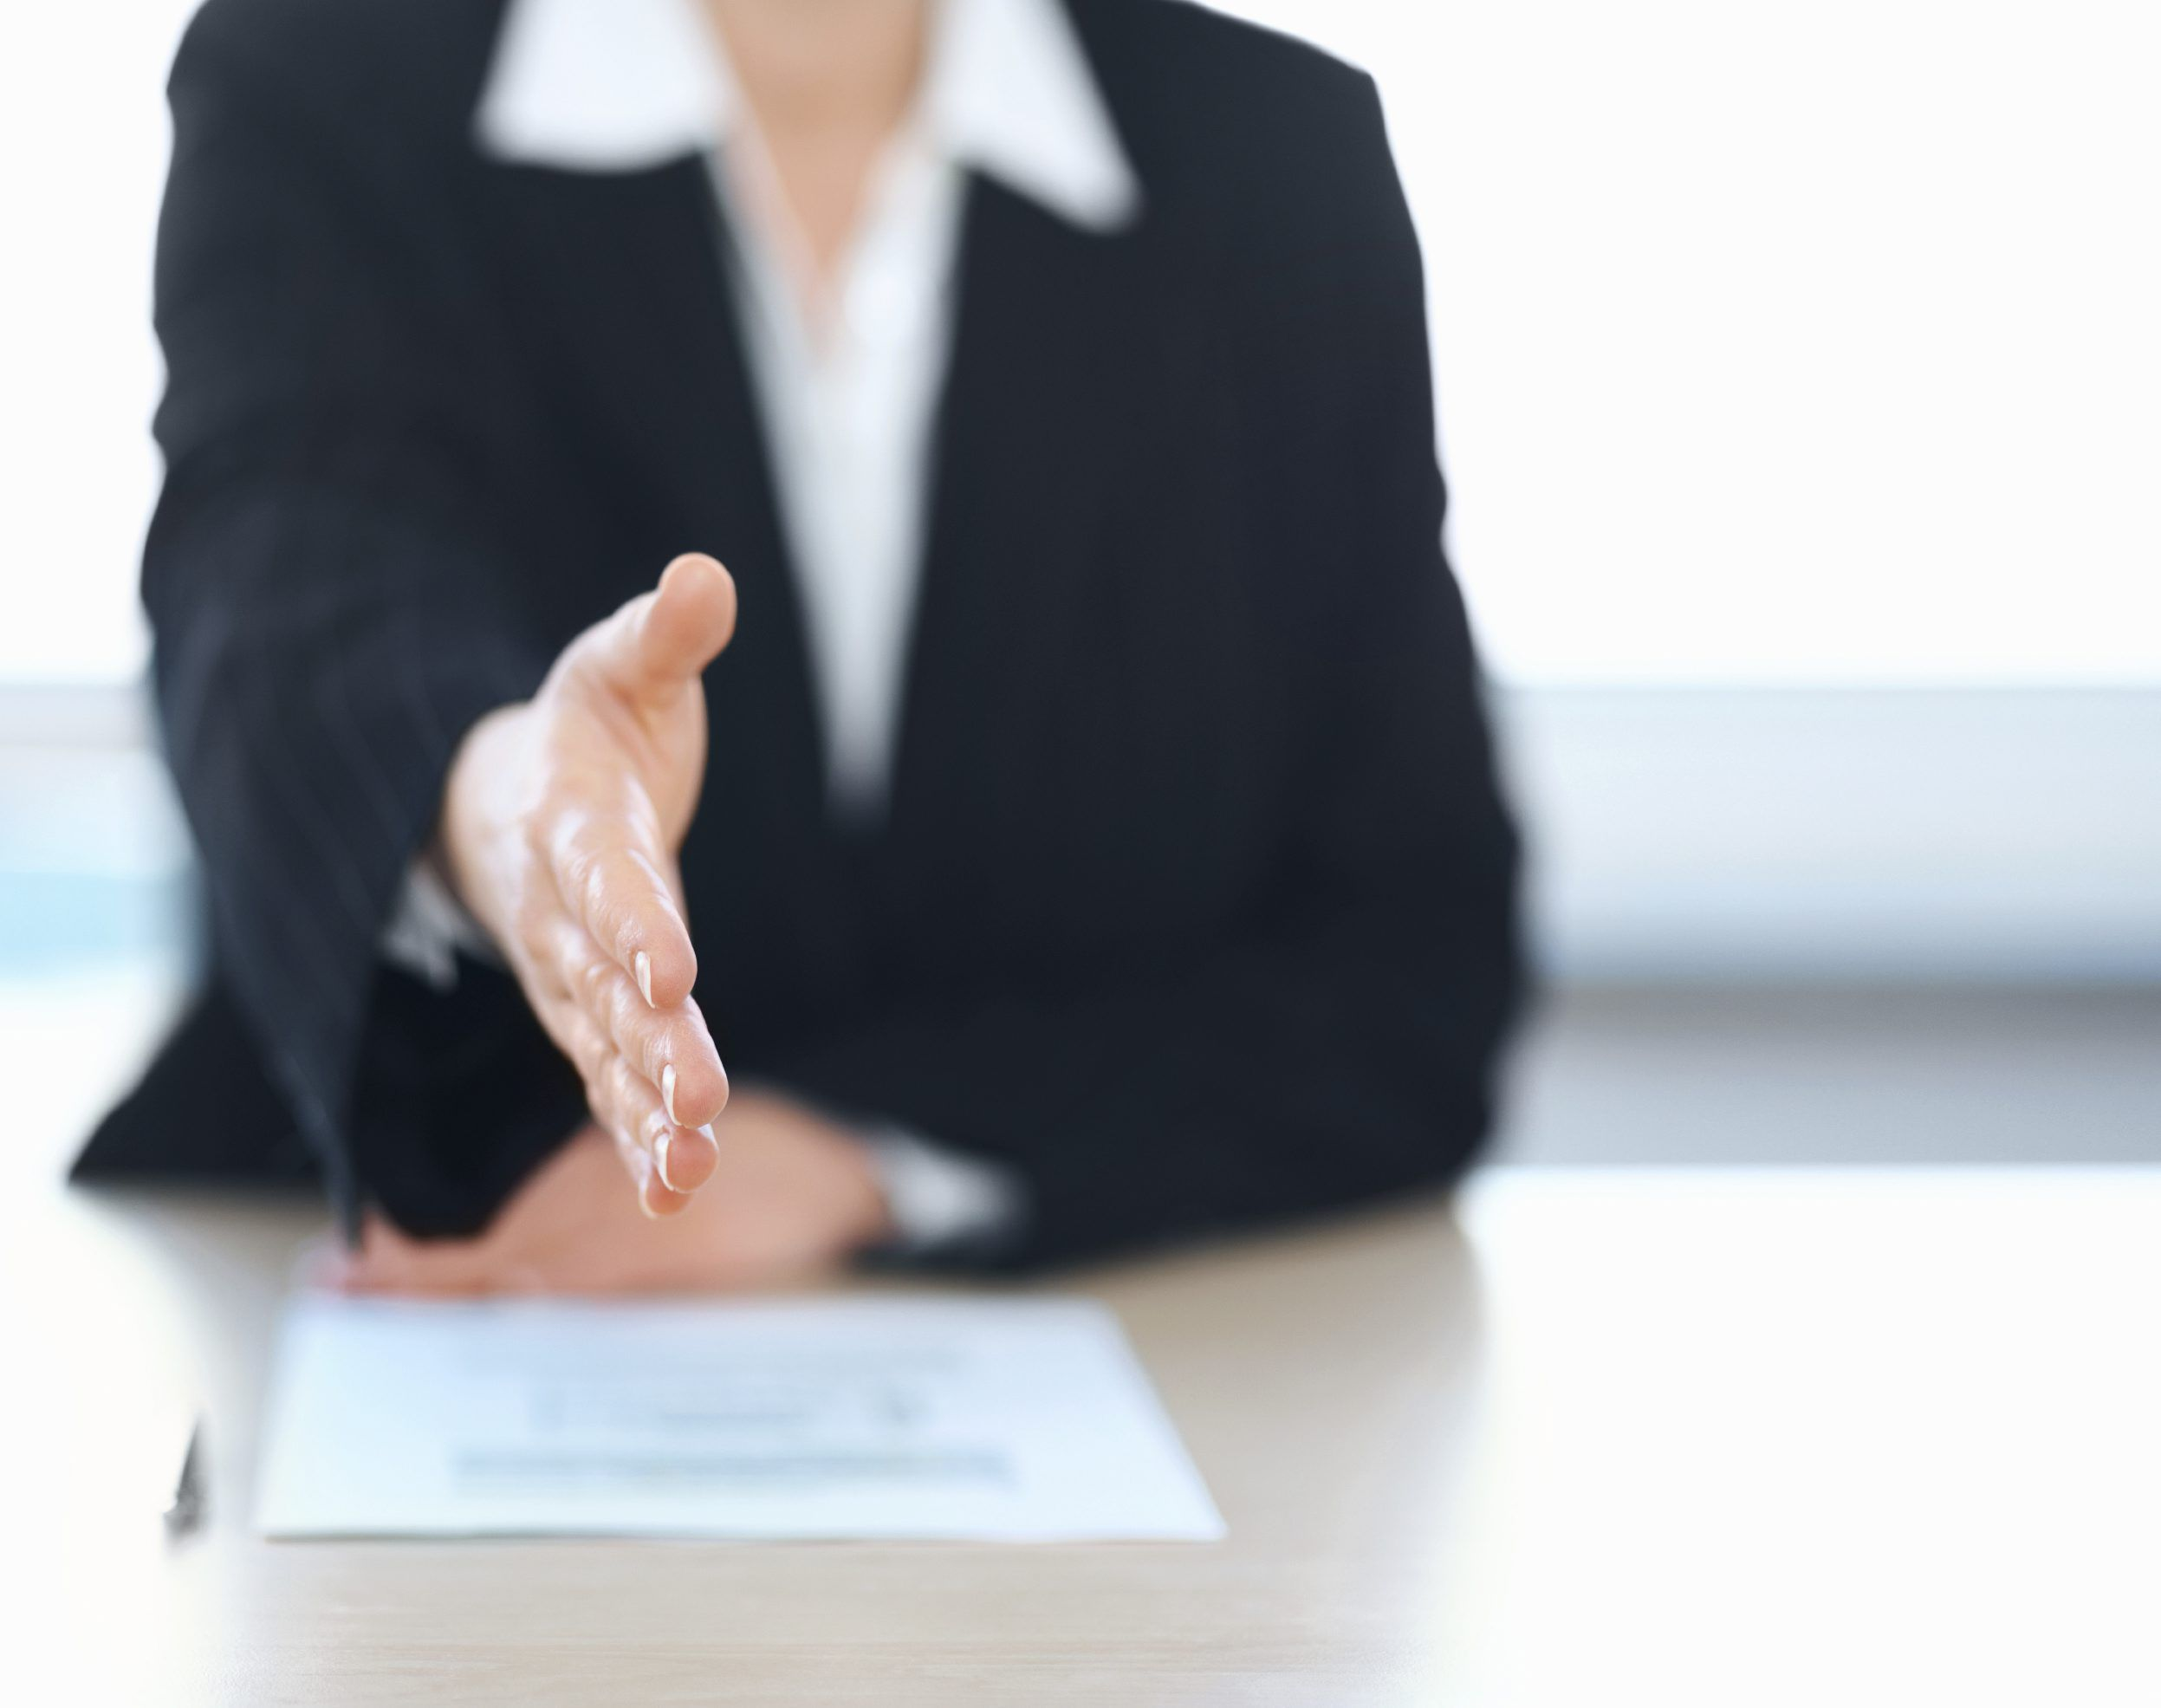 Companies with more female executives have higher credit quality, study finds